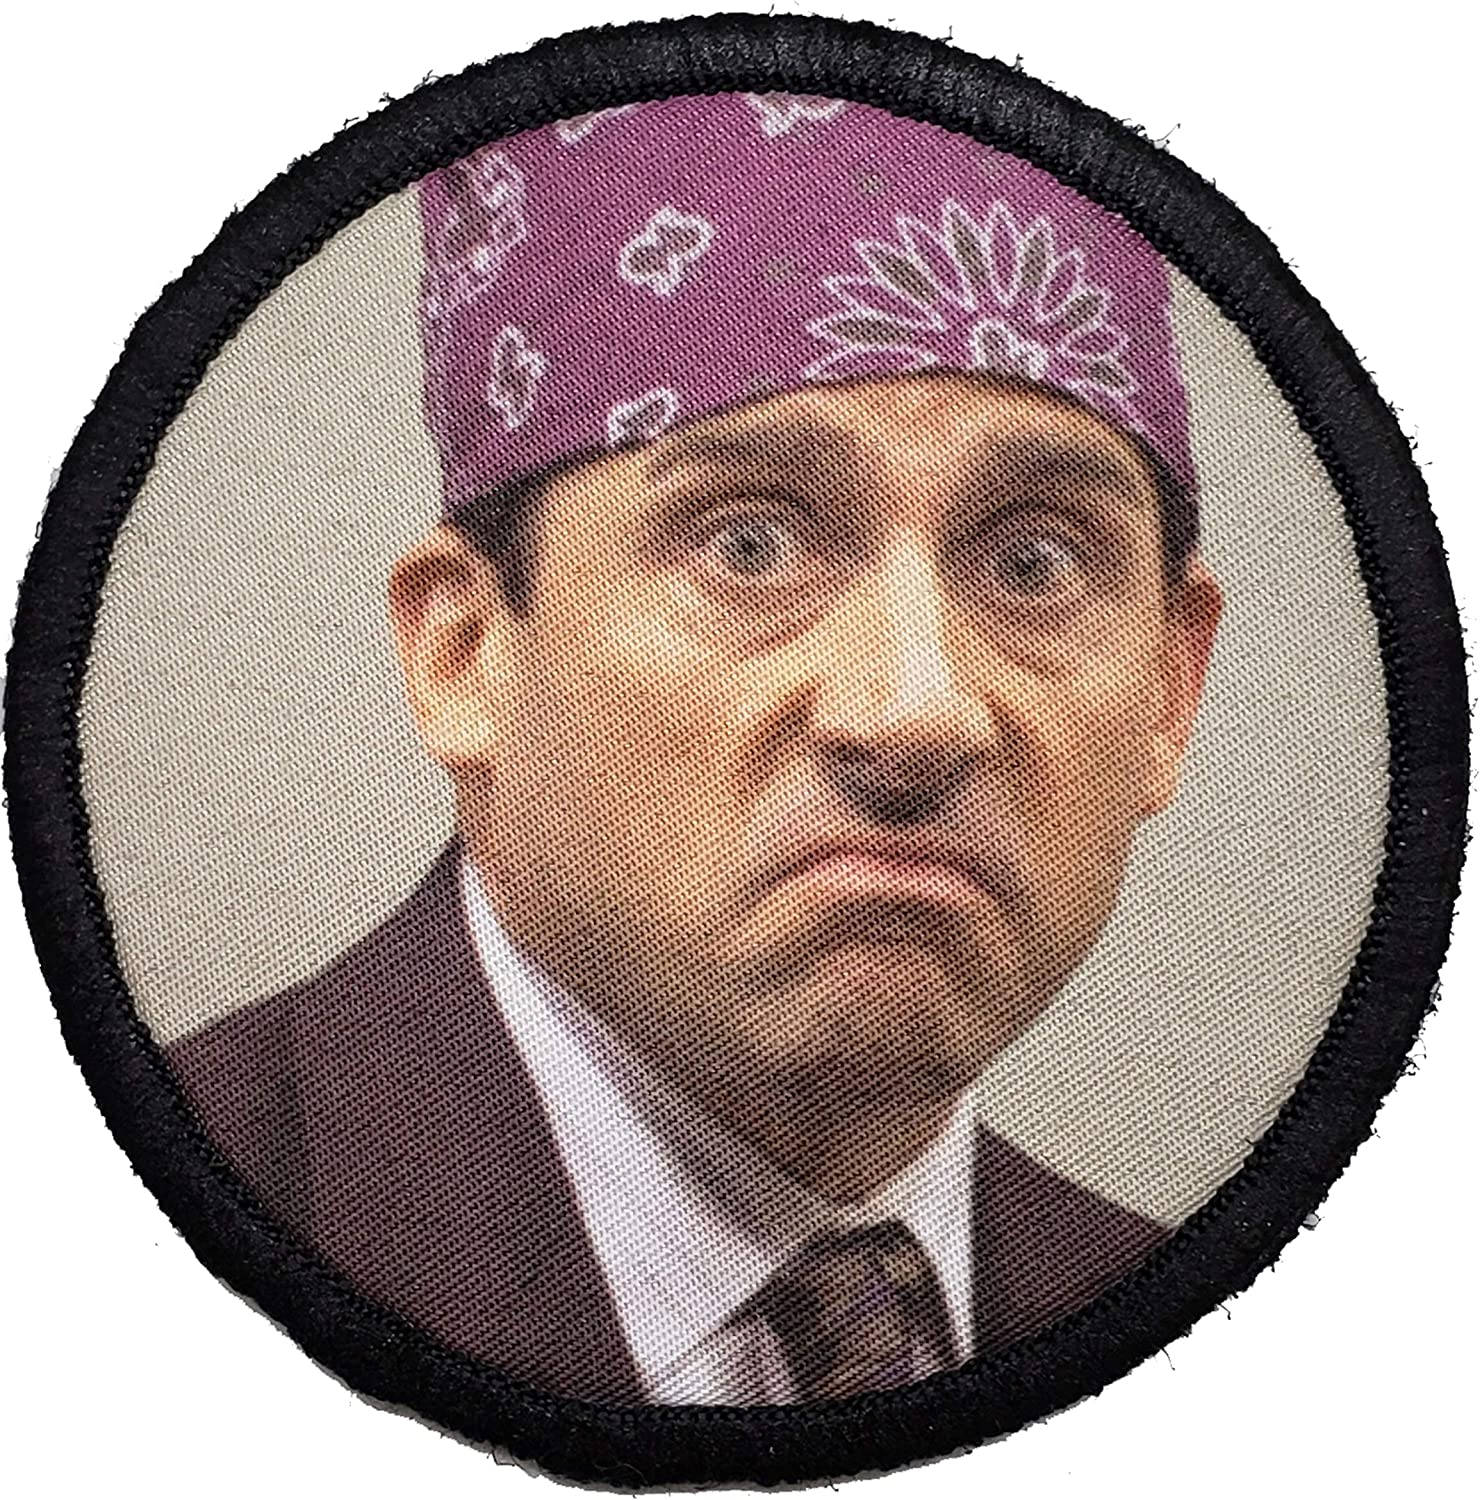 "The Office Prison Mike Morale Patch. Perfect for Your Tactical Military Army Gear, Backpack, Operator Baseball Cap, Plate Carrier or Vest. 2x3"" Hook Patch. Made in The USA"